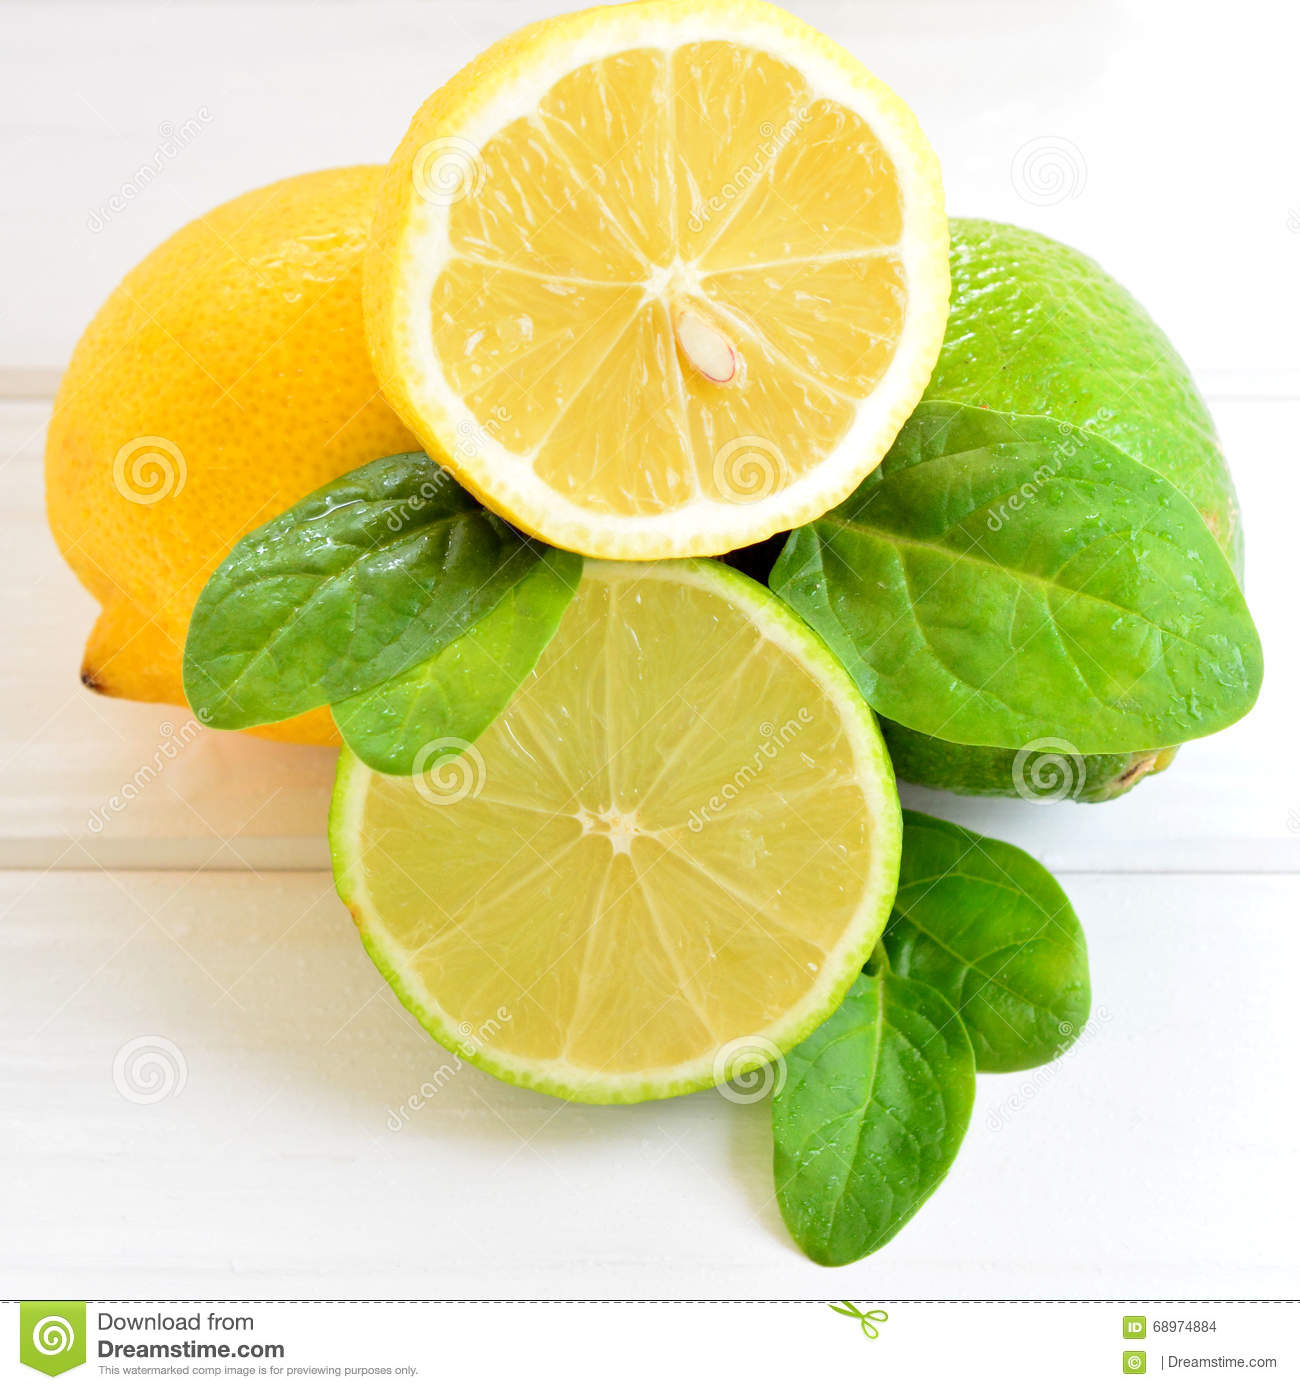 Citrus lime and lemon on a white table